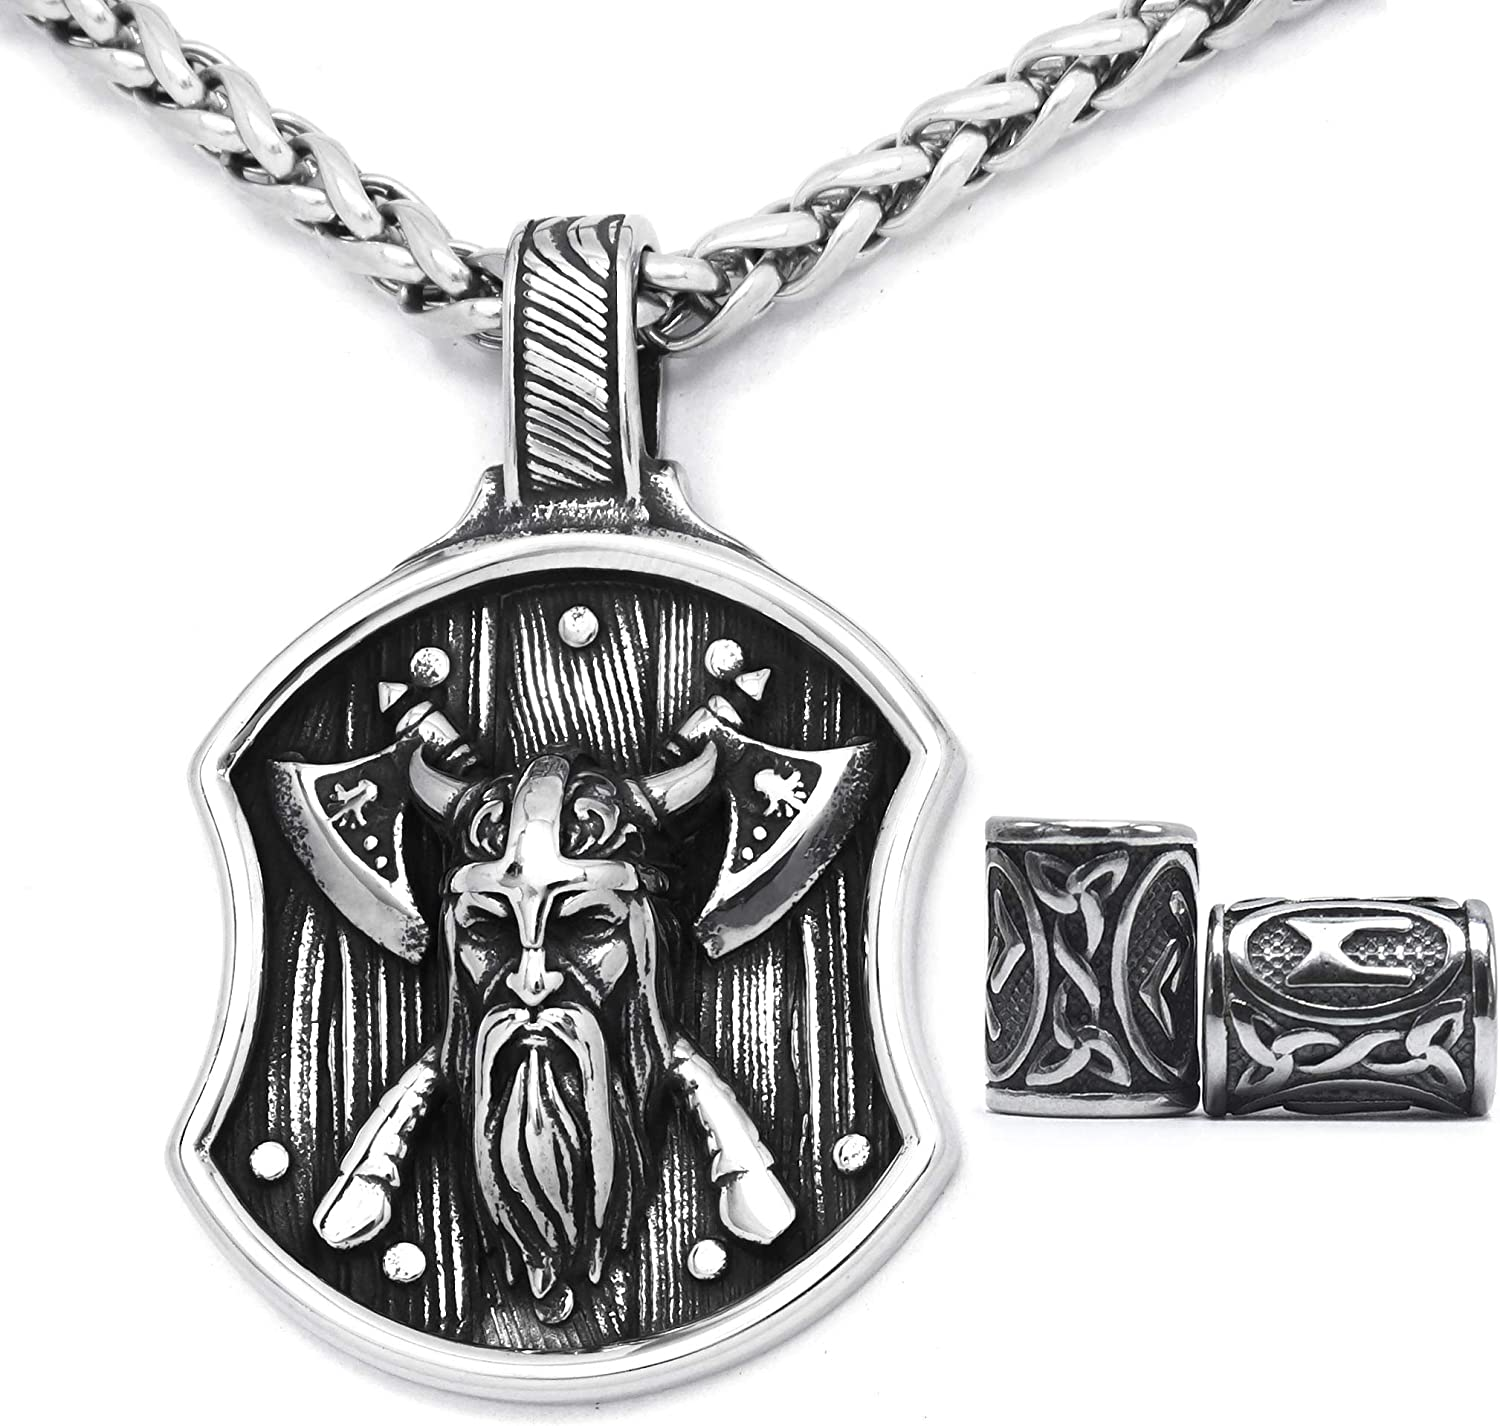 Gungneer Scandinavian Shield Odin Valknut Sword Viking Gift for Men Stainless Steel Pagan Jewelry Ancient Great Amulet Protection